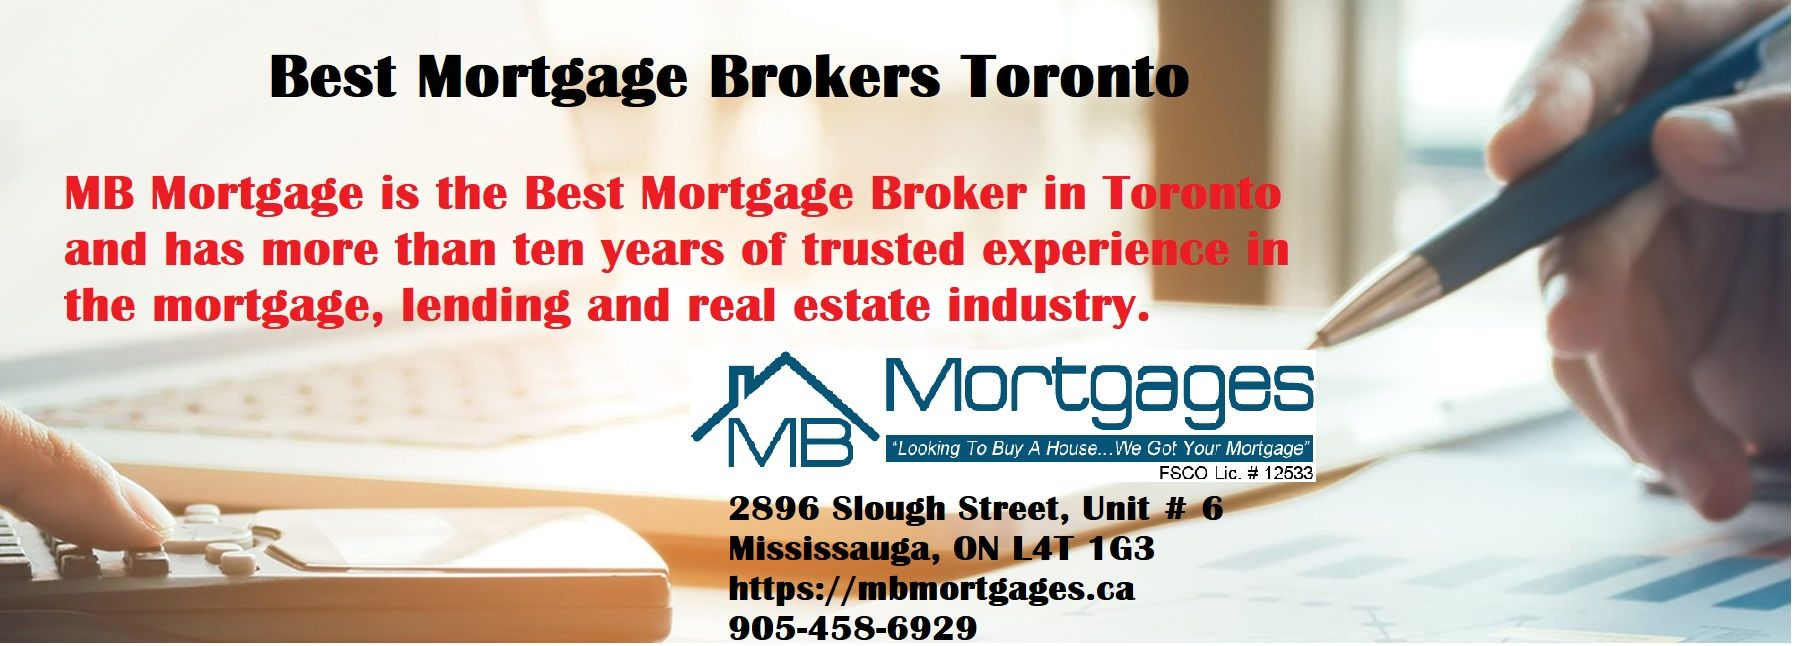 Best Mortgage Brokers Toronto | Mb Mortgages Inc.